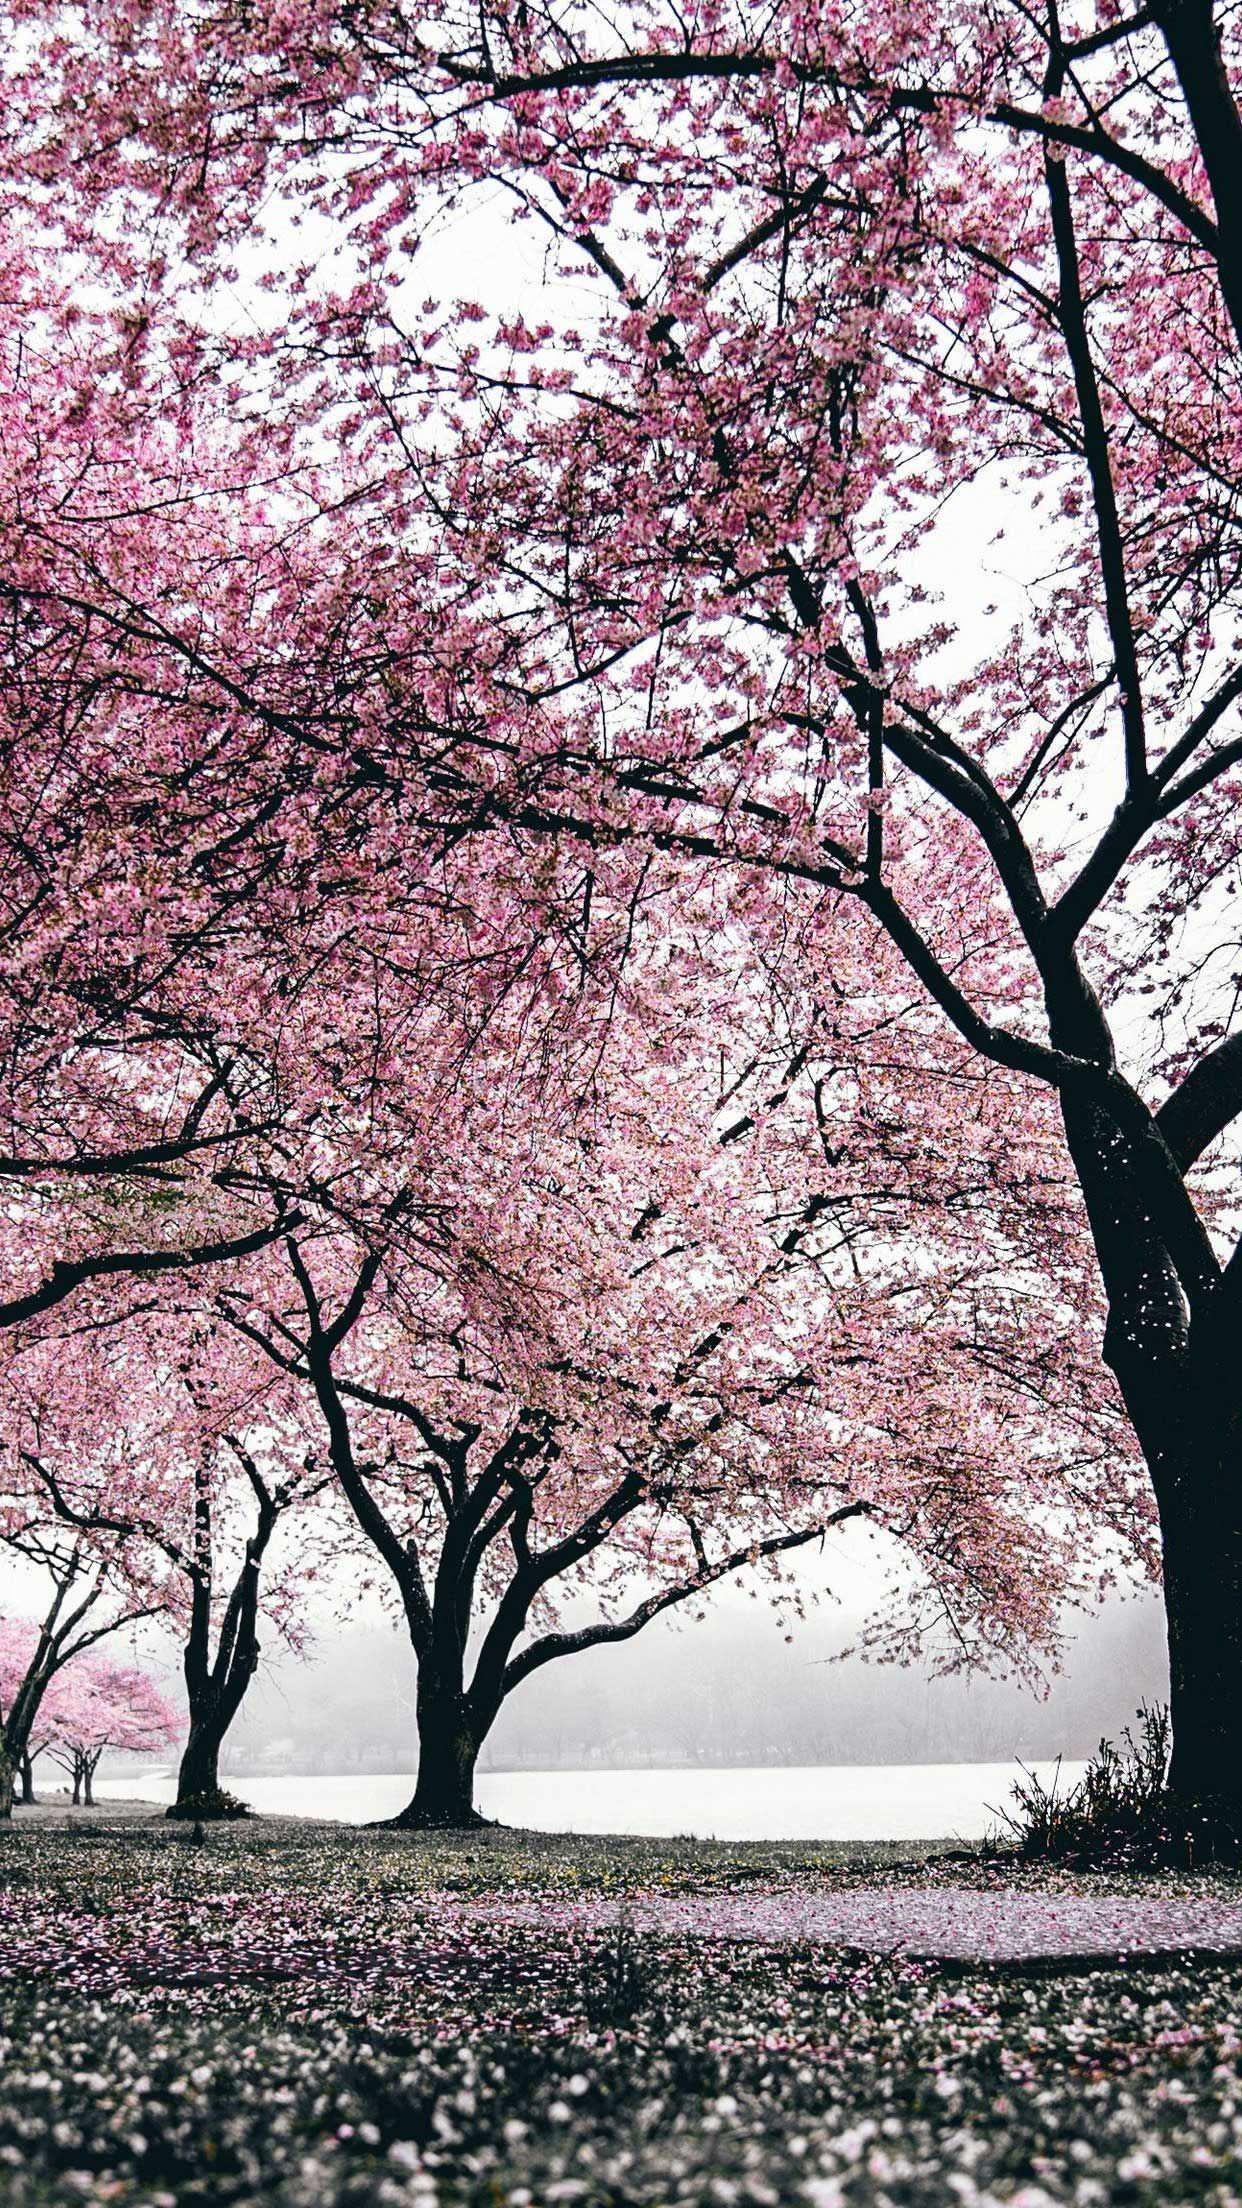 Iphone Wallpaper Sakura Trees Flowering Hd In 2020 Sakura Tree Tree Wallpaper Iphone Tree Photography